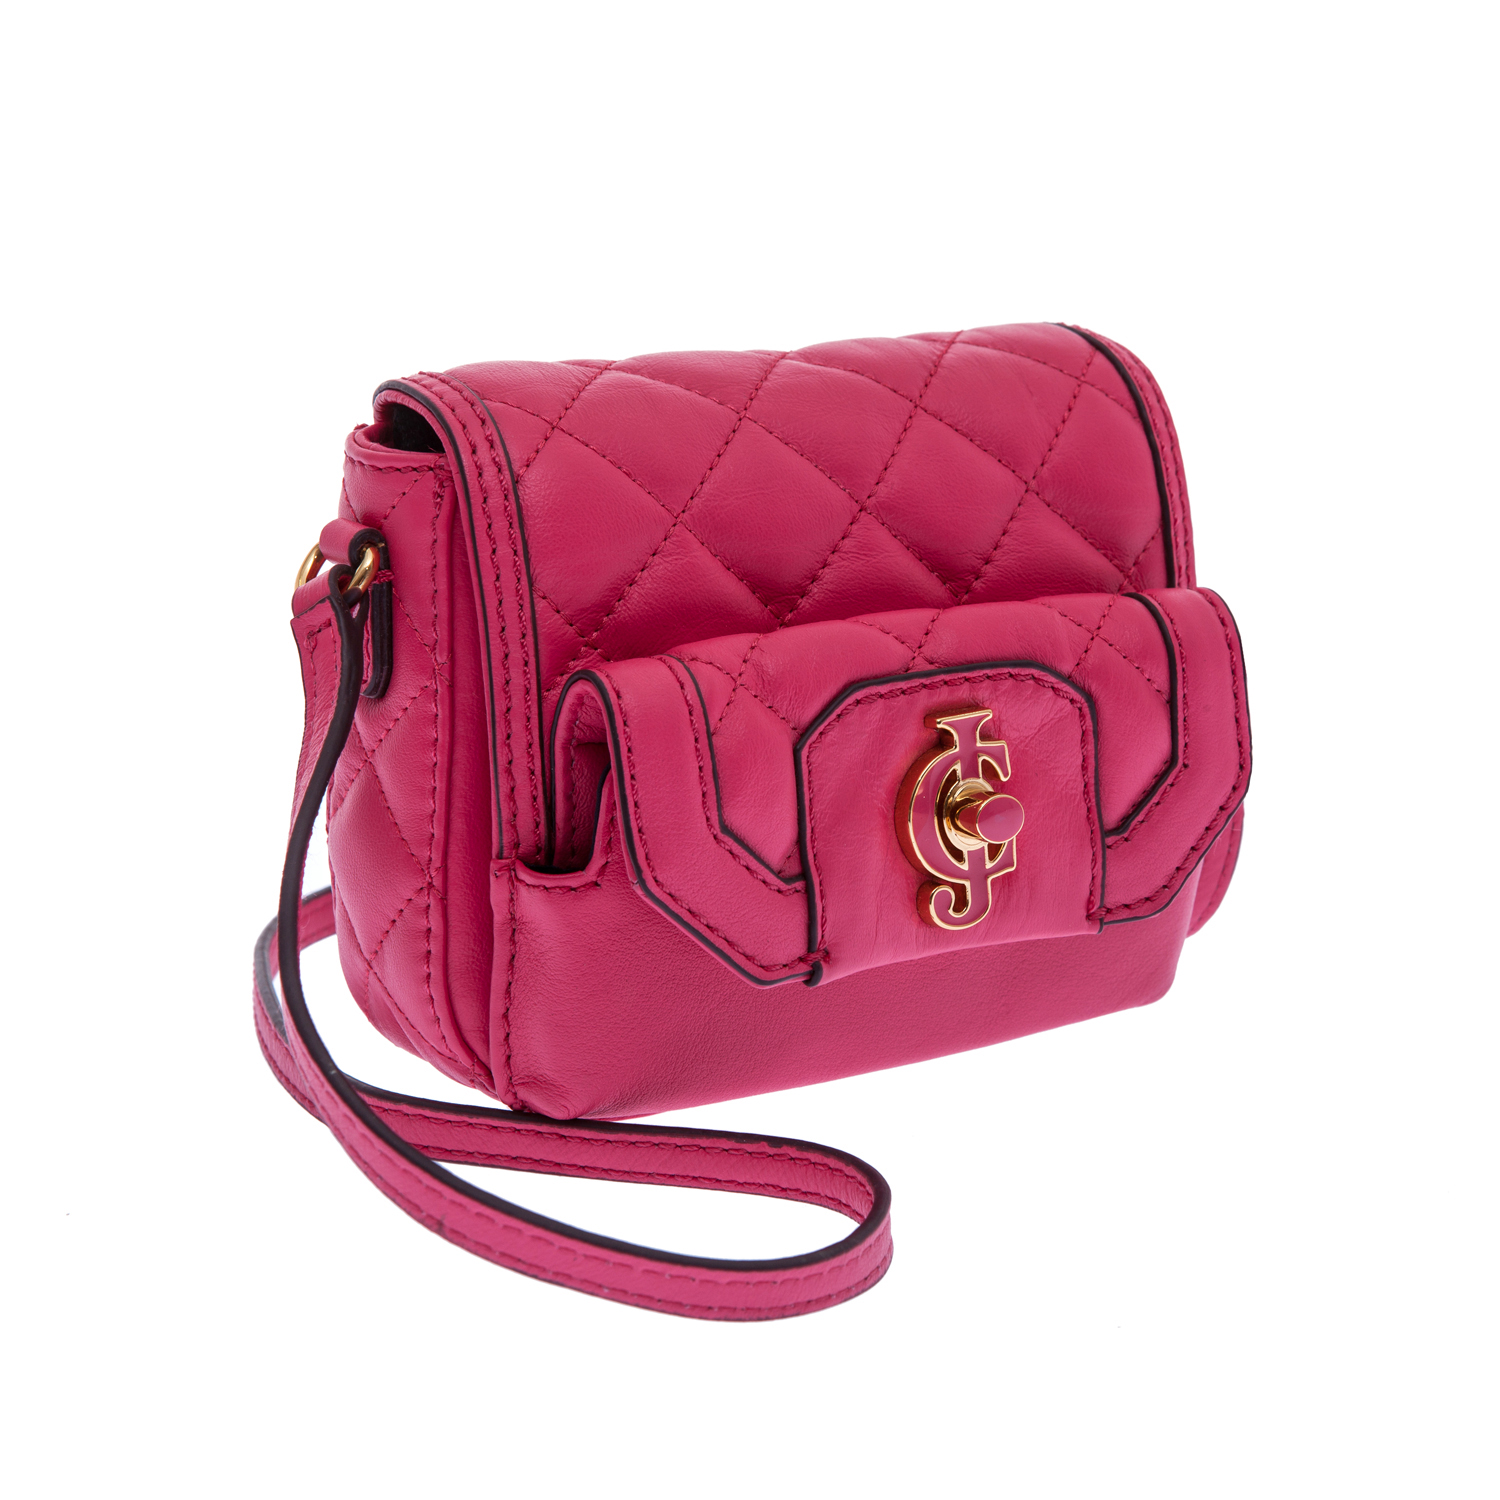 JUICY COUTURE – Γυναικεία τσάντα Juicy Couture φούξια 1379425.0-00F2